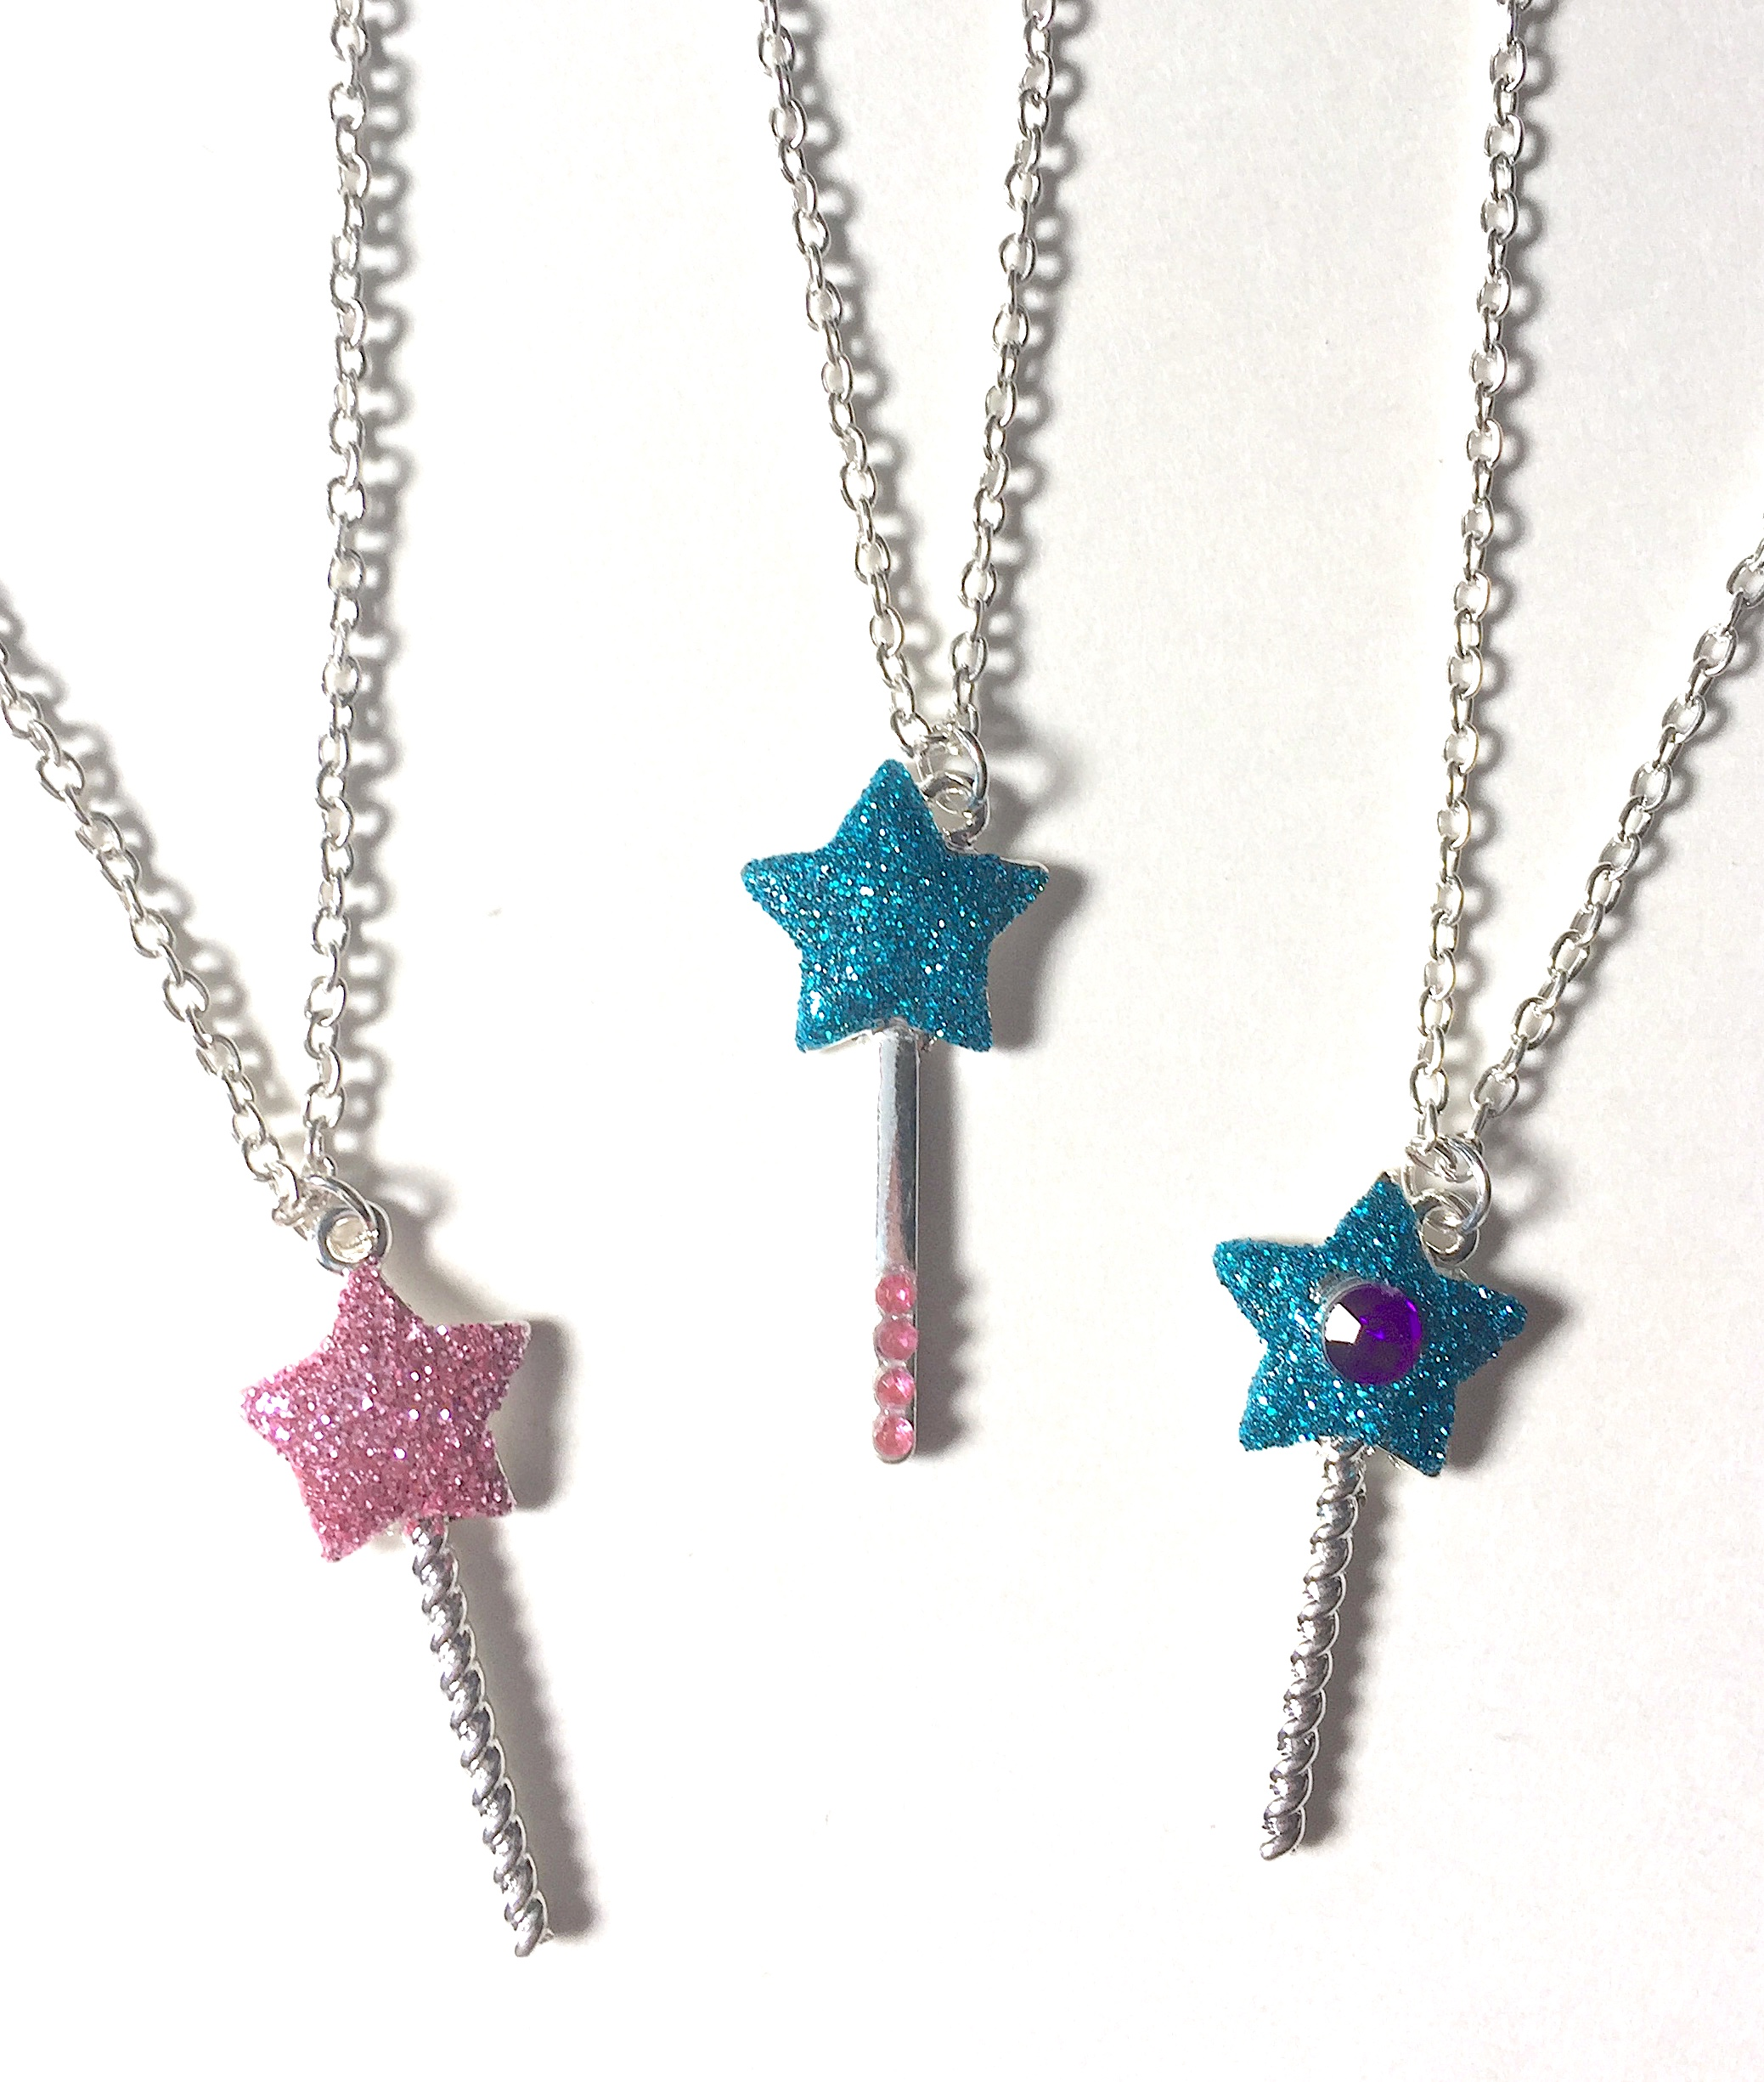 Fairy Wand Necklaces